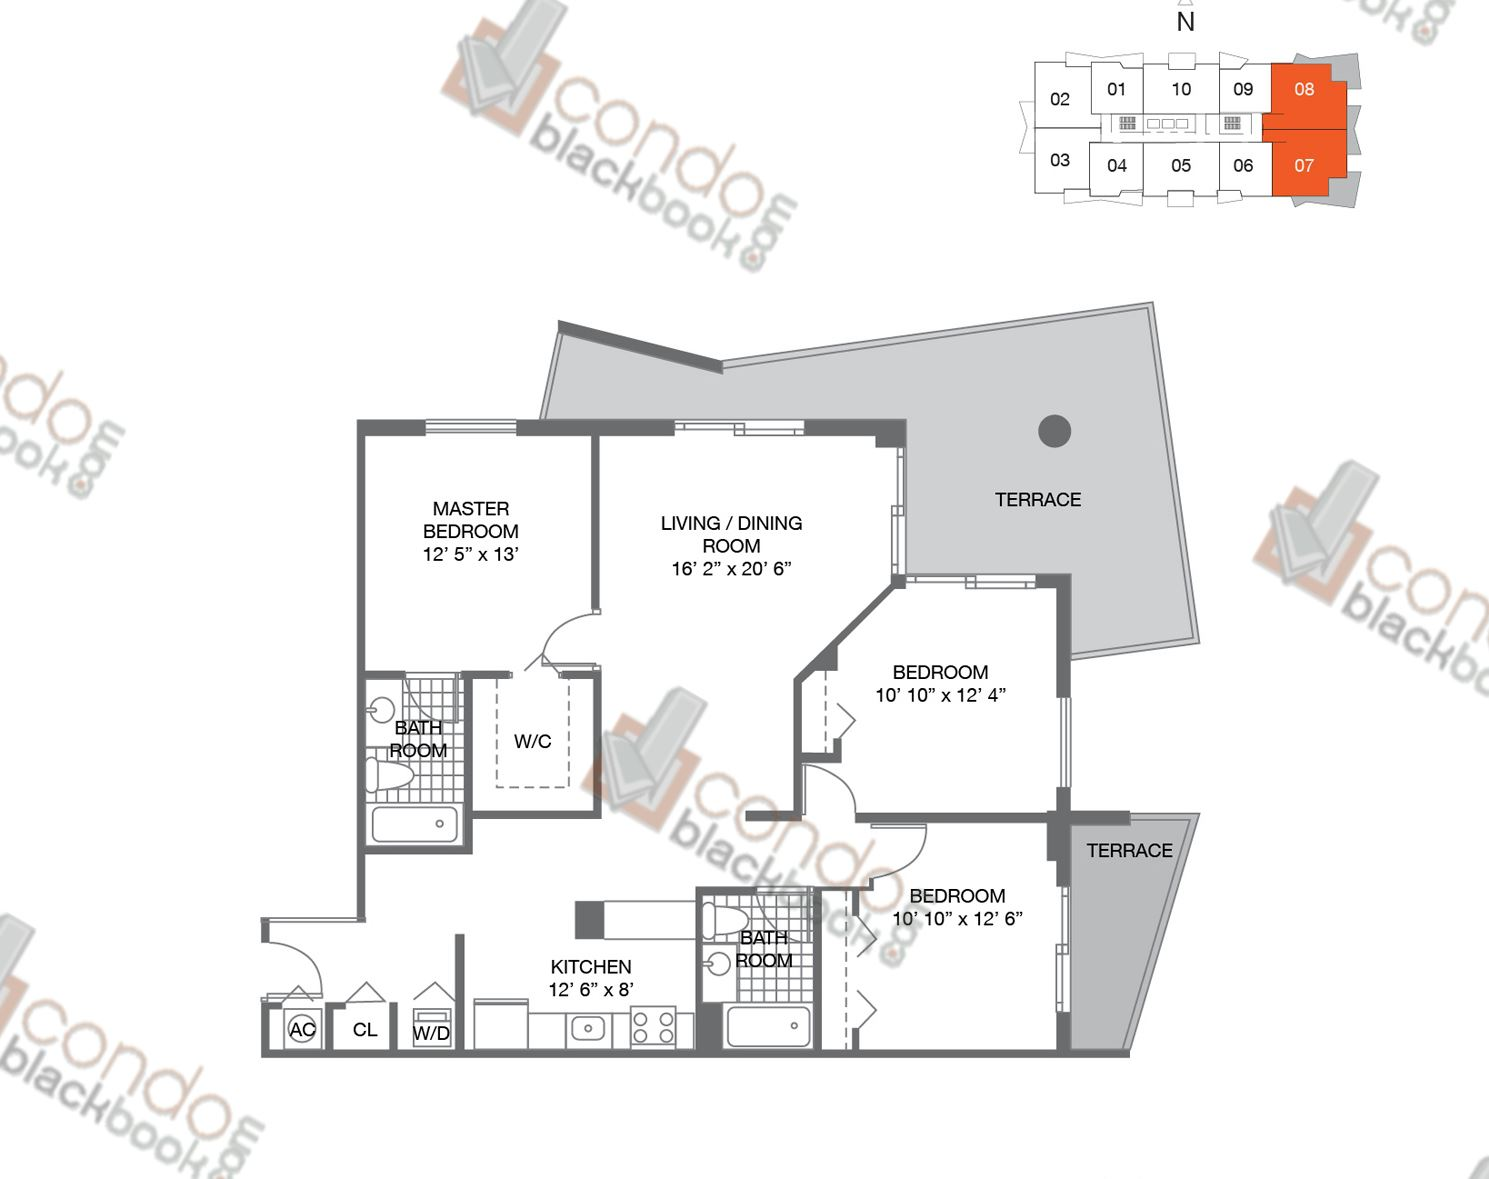 Floor plan for 1800 Biscayne Plaza Edgewater Miami, model A-A1, line 07,08, 3/2 bedrooms, 1,318 sq ft